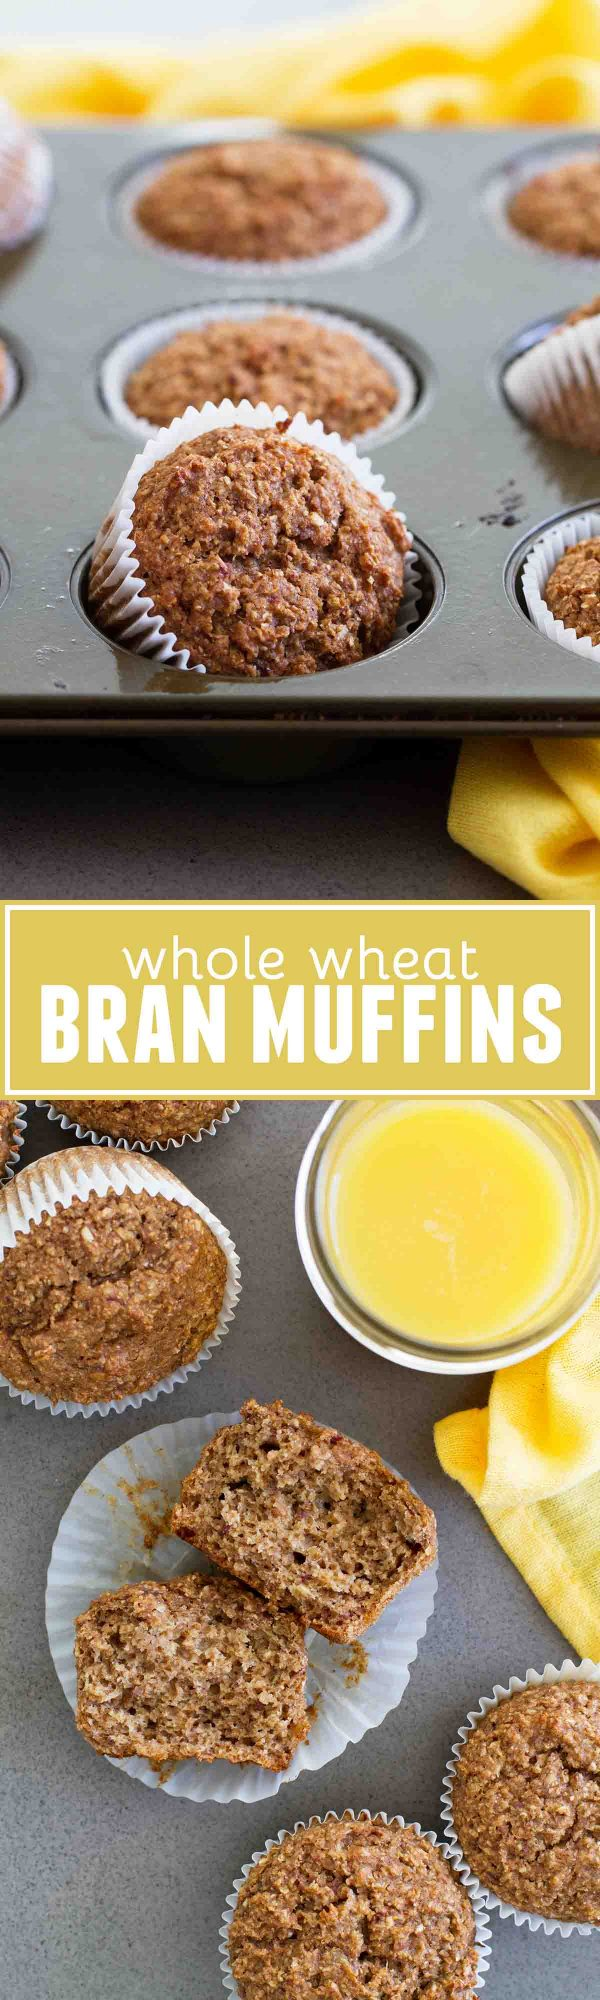 This recipe for Whole Wheat Bran Muffins is a great way to start your day! Filled with whole grains and sweetened with bananas and dates, these muffins are healthy, hearty and delicious!